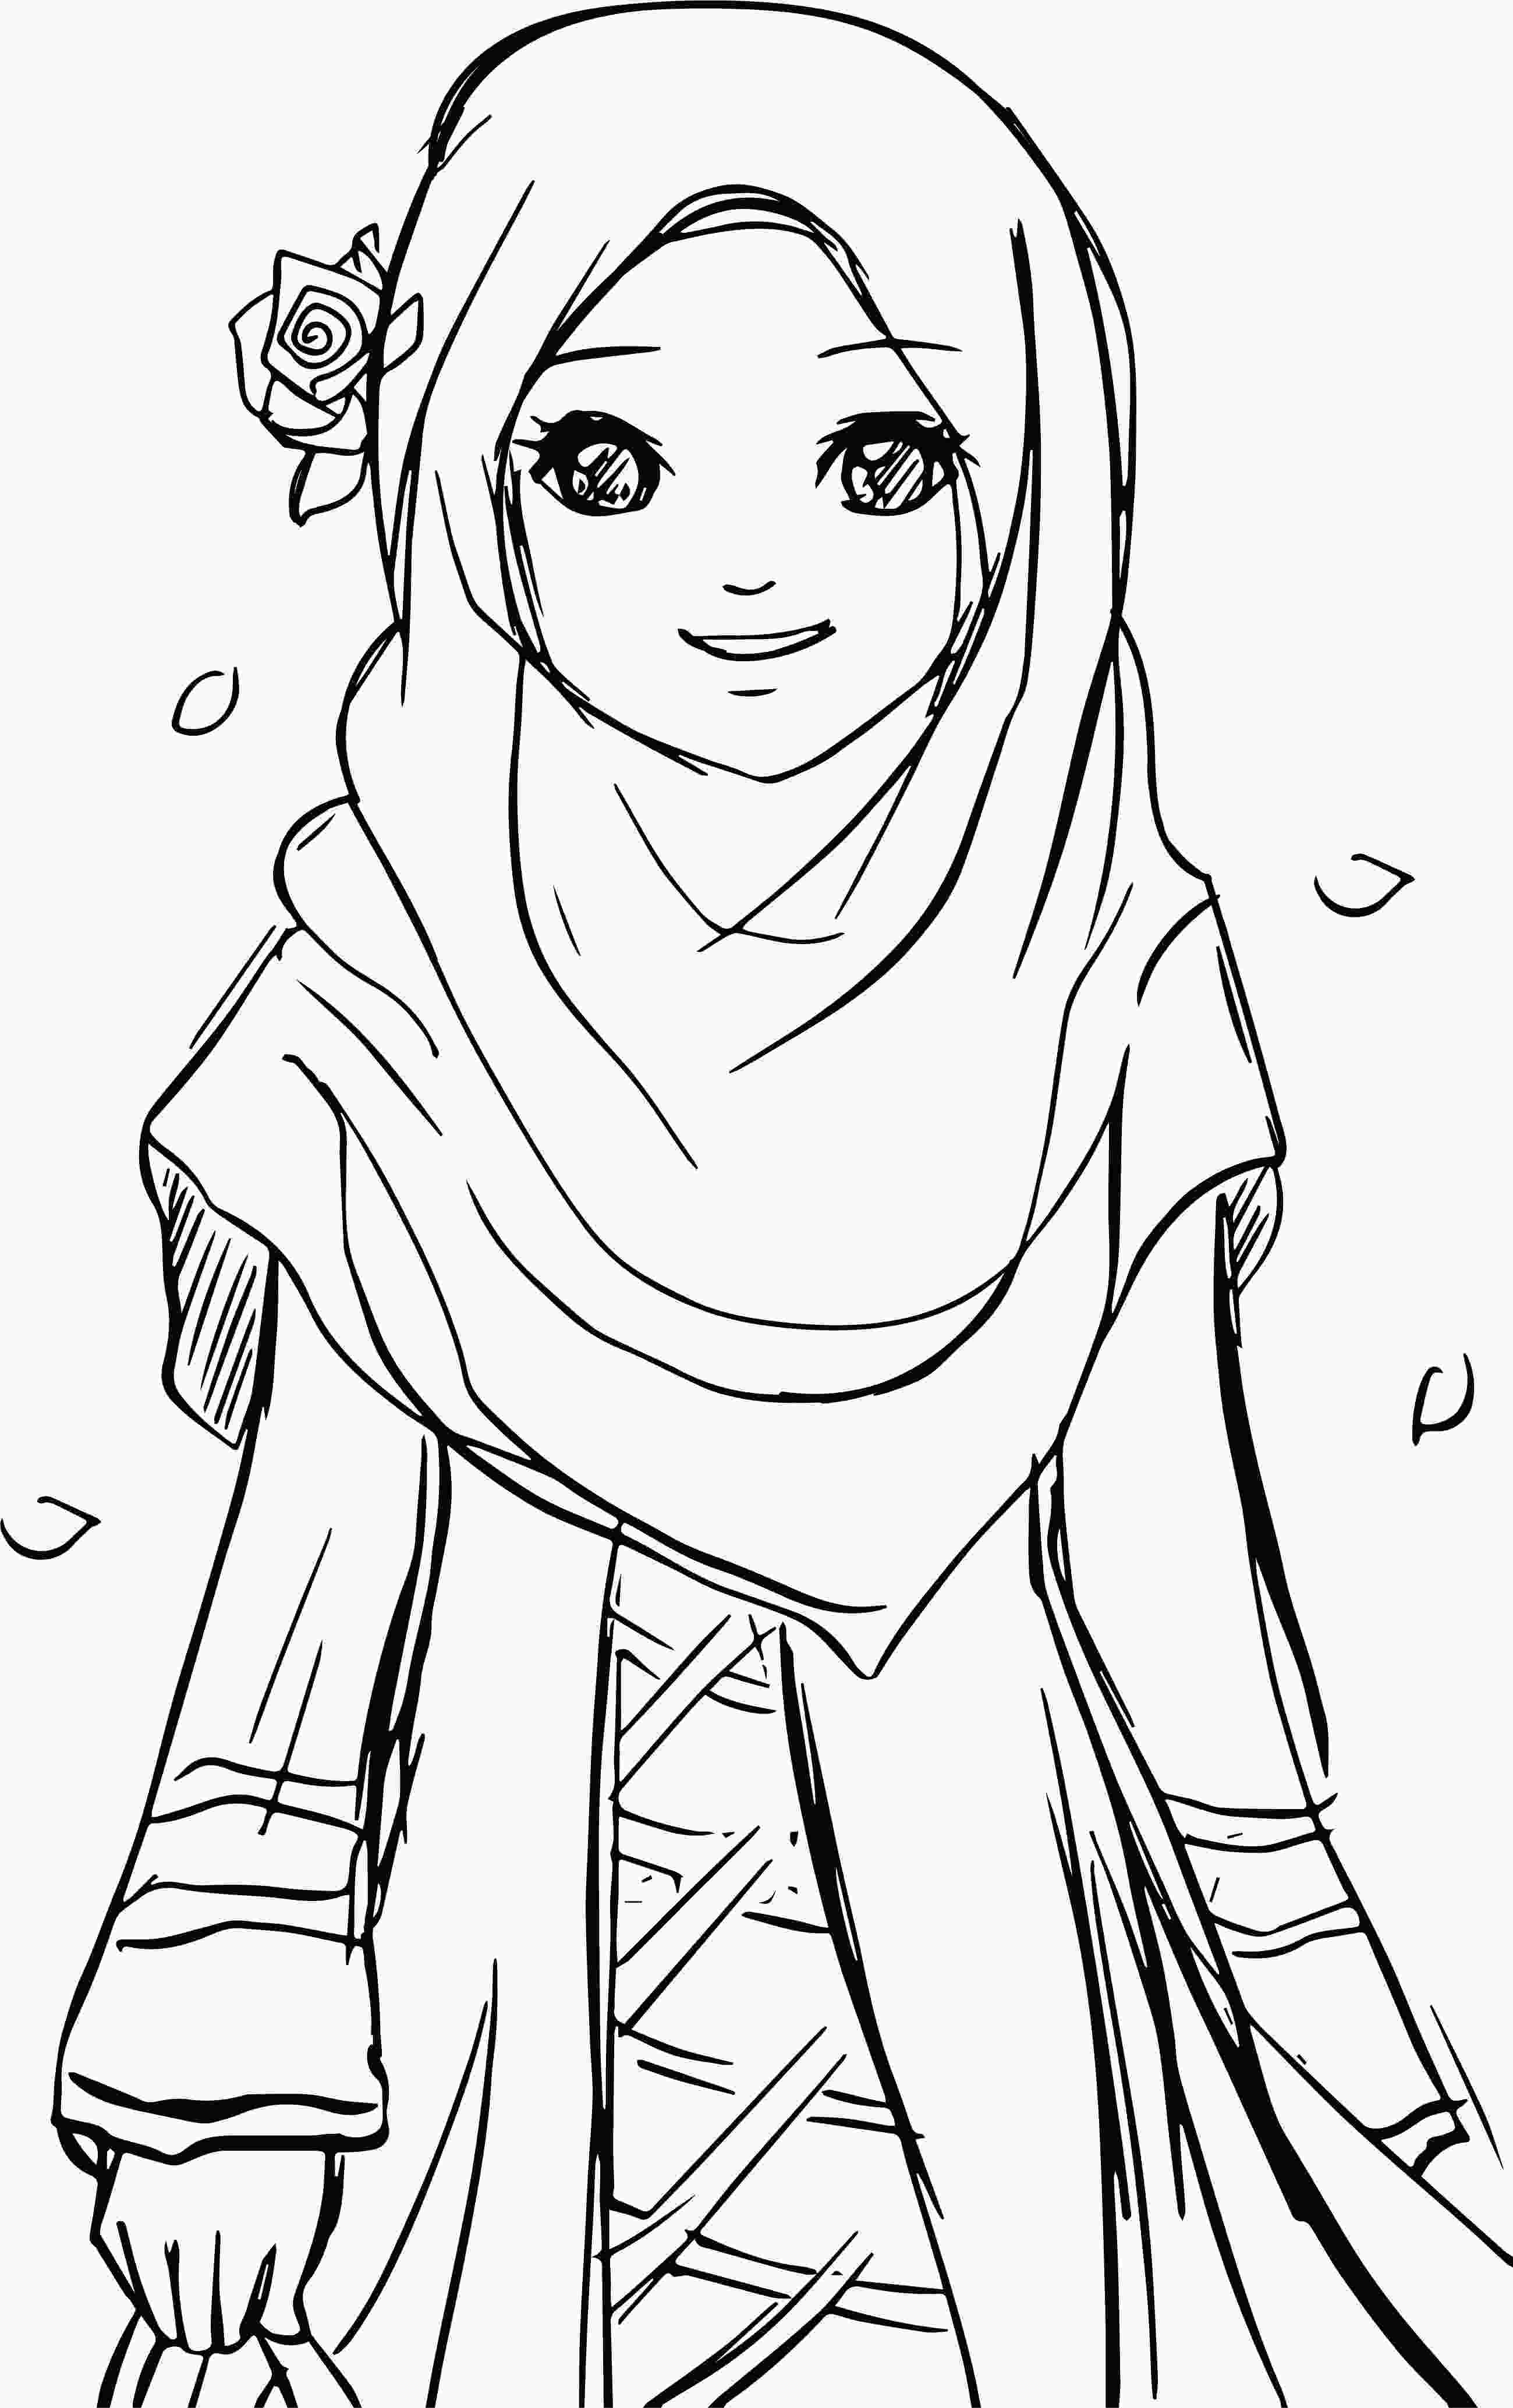 girl colouring pages cool islamic muslim wears hijab girl coloring pages